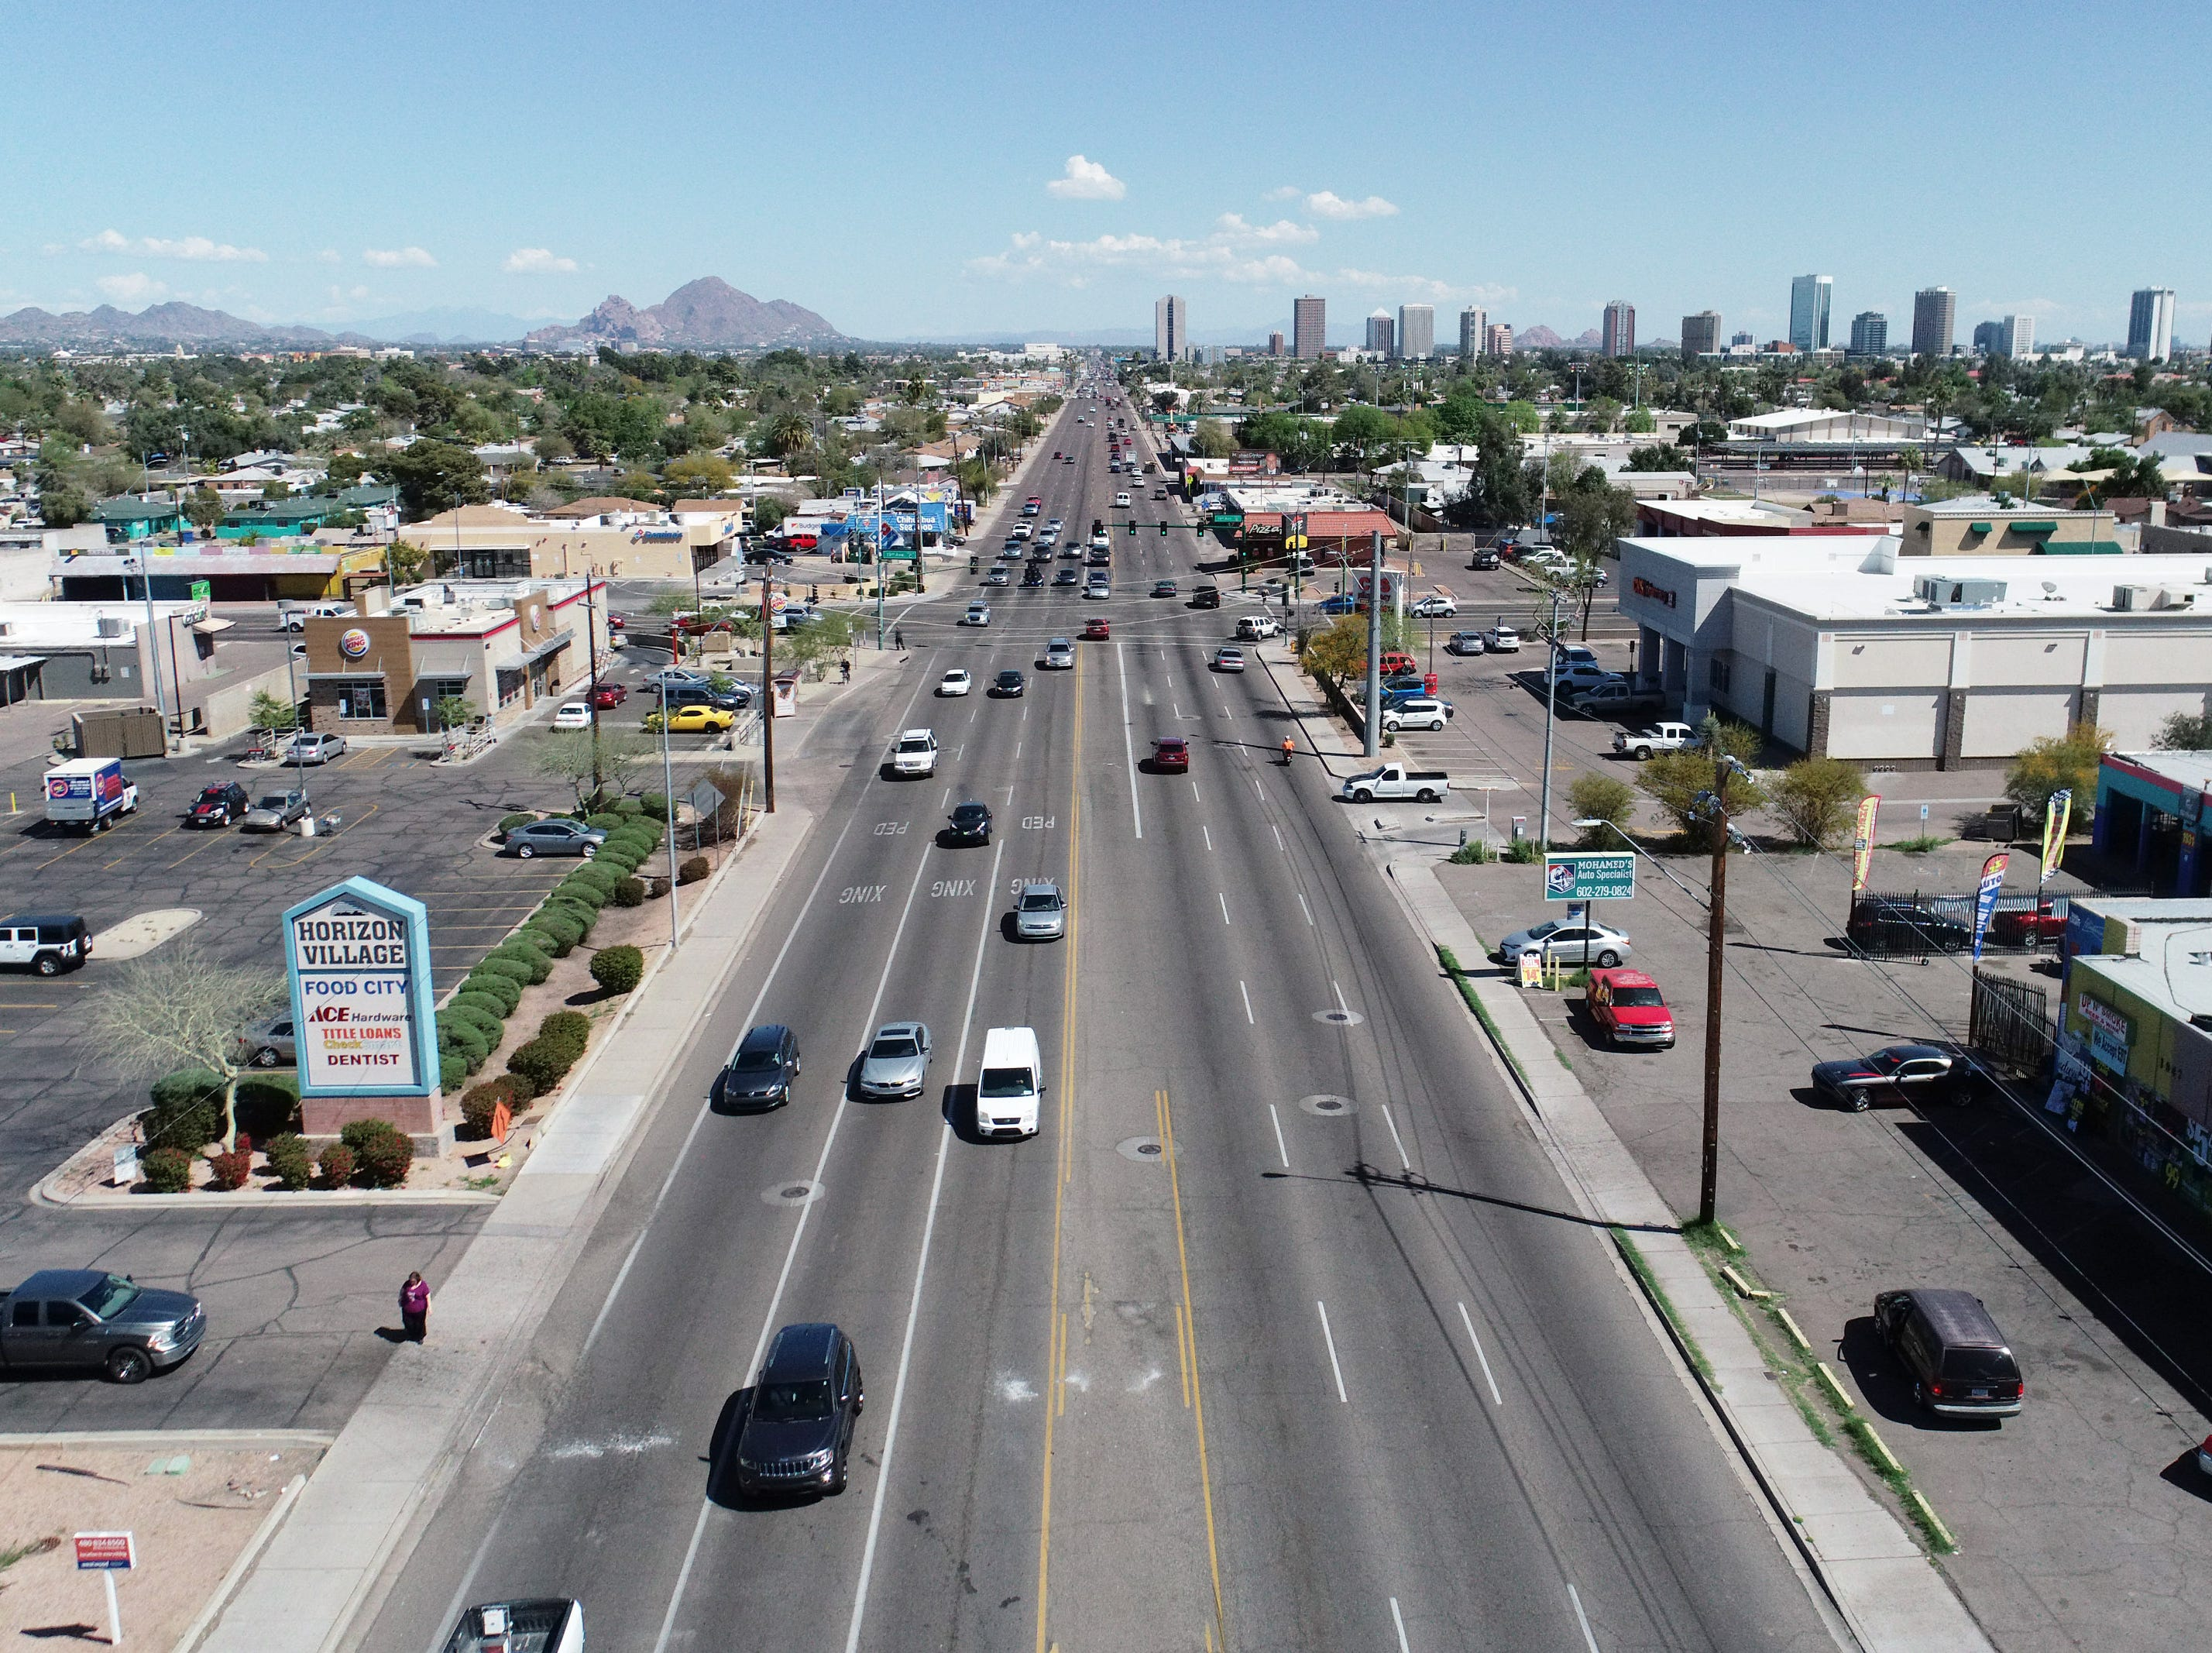 A drone view shows traffic on Indian School Road near 19th Avenue in Phoenix on March 18, 2019.